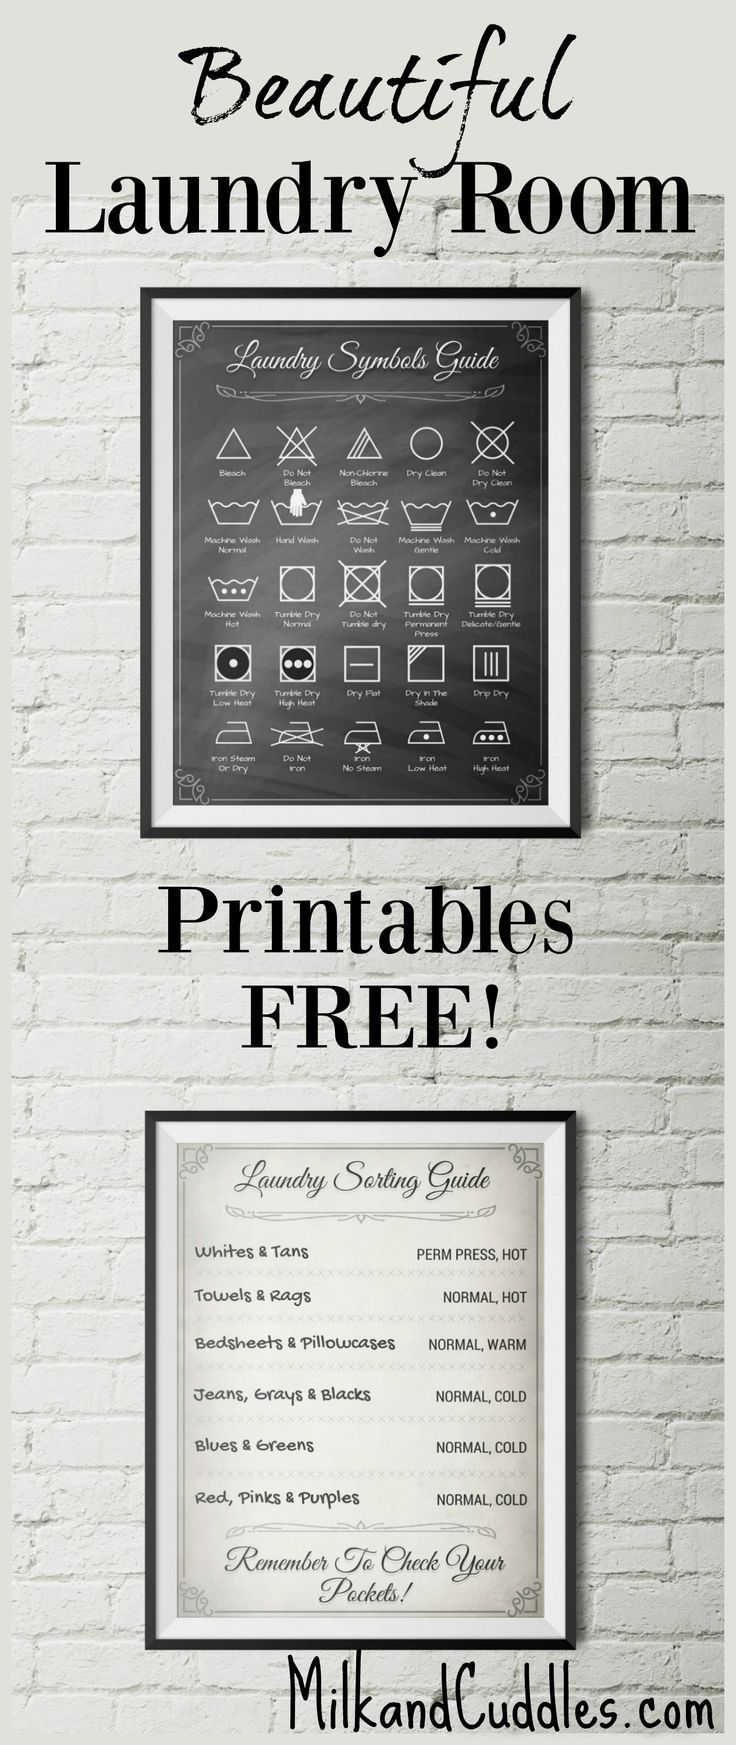 Room Design Online Free: Free Printables For Laundry Room